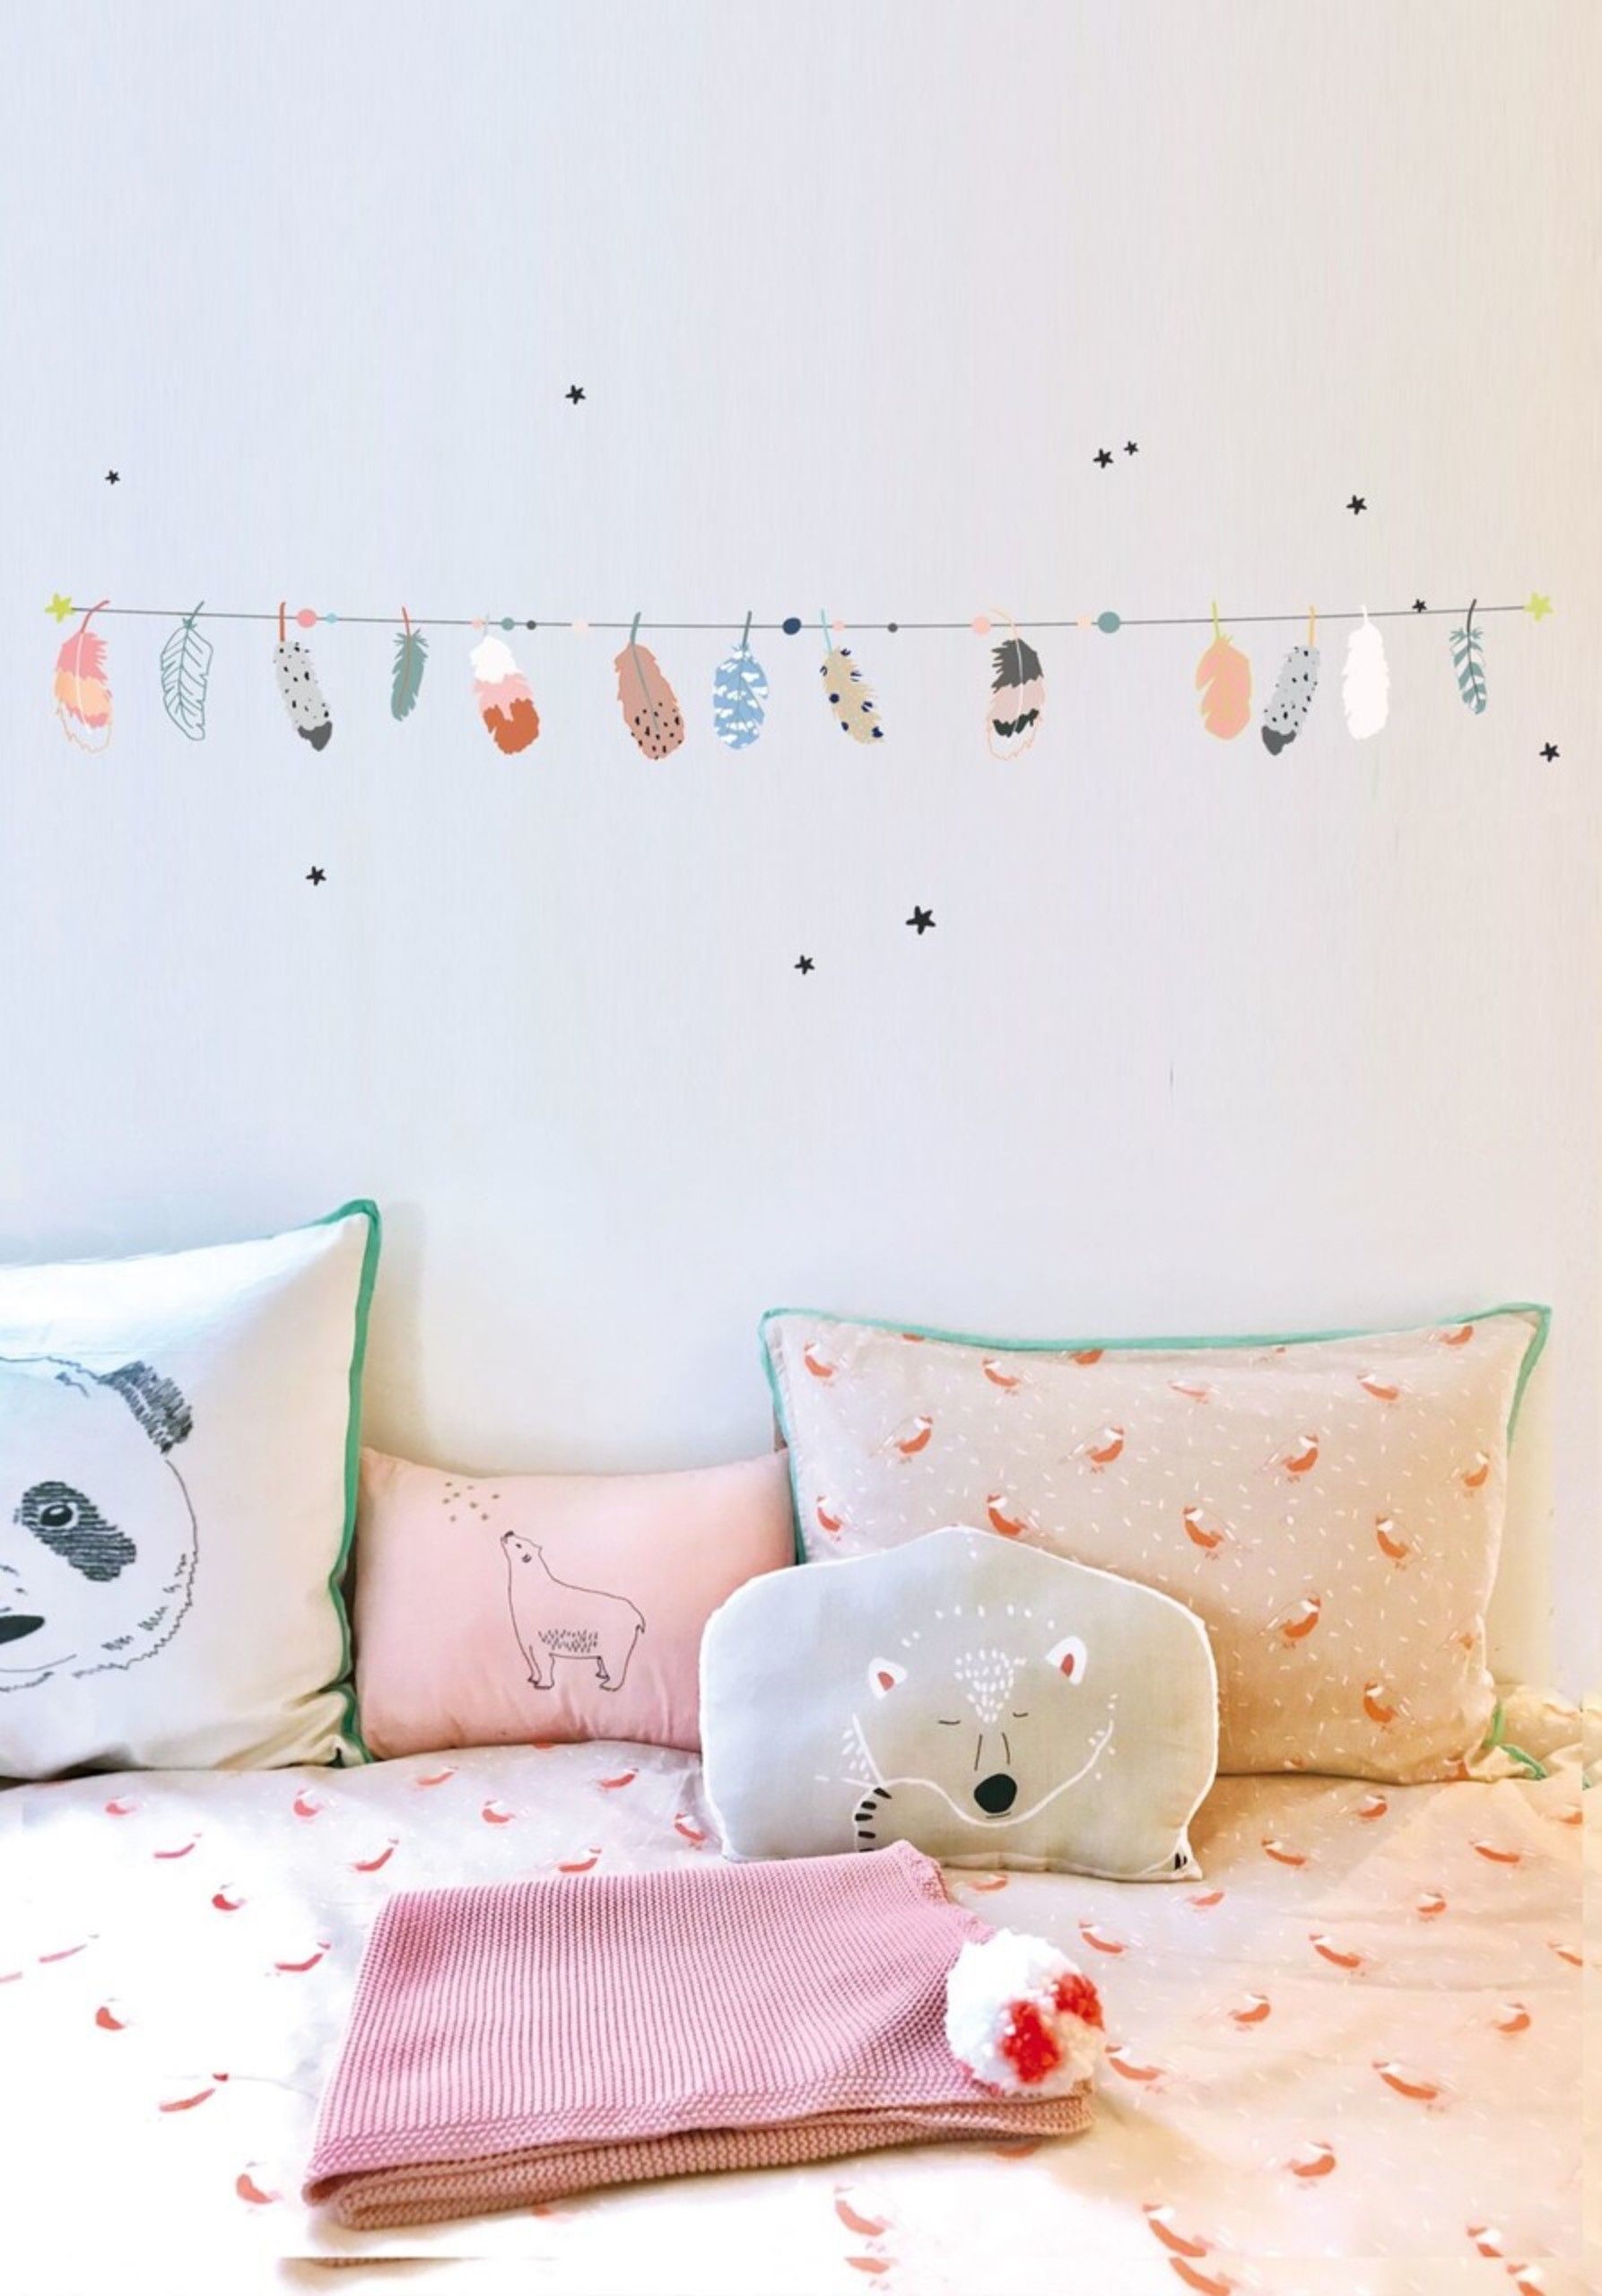 Browse Our Selection Of Wall Stickers And Posters @Stickers Httpwu